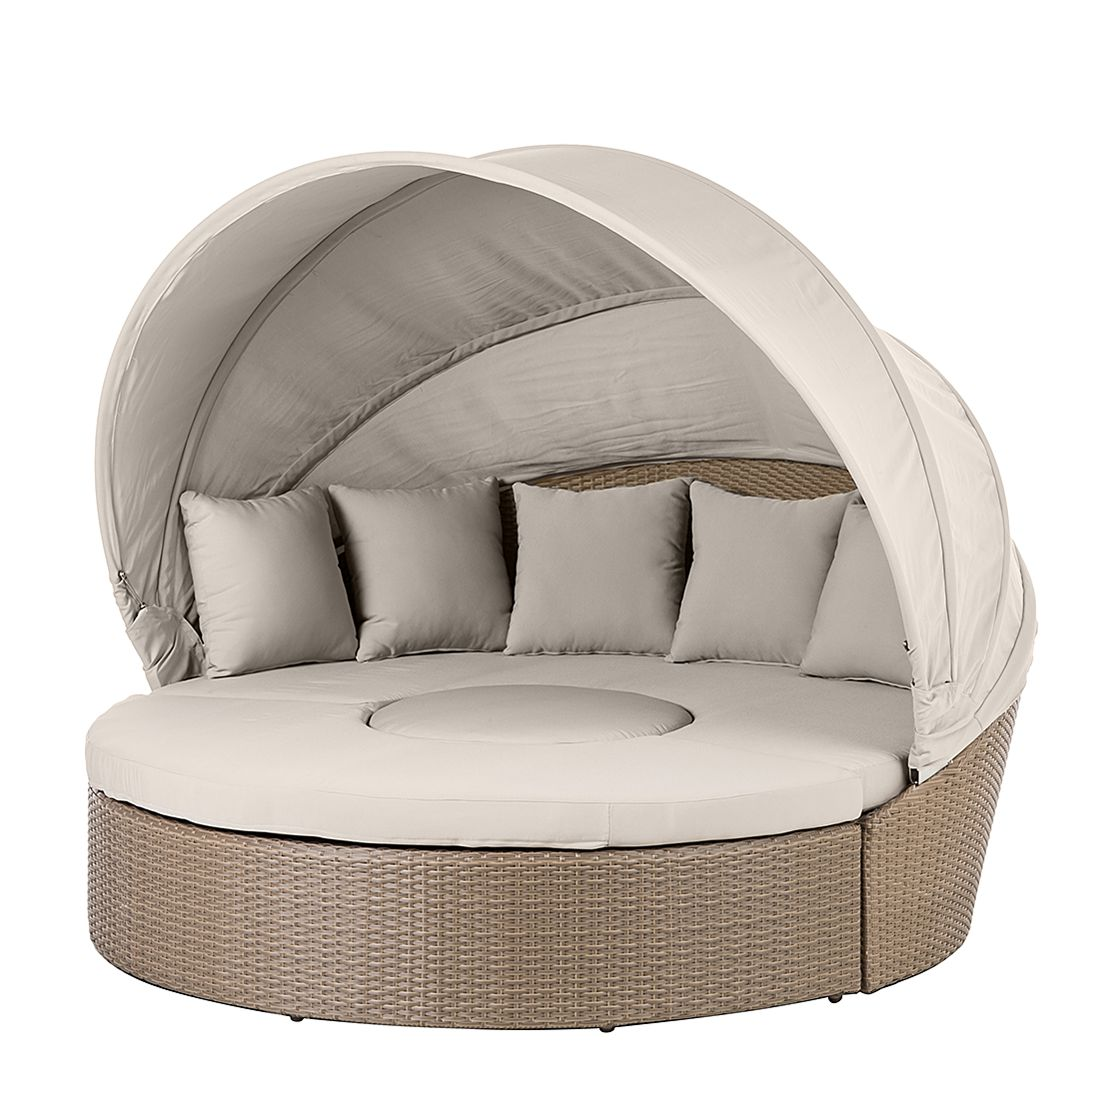 Sonneninsel Rattanesco Puca (3-teilig) - aus Polyrattan - in Braun, Kings Garden